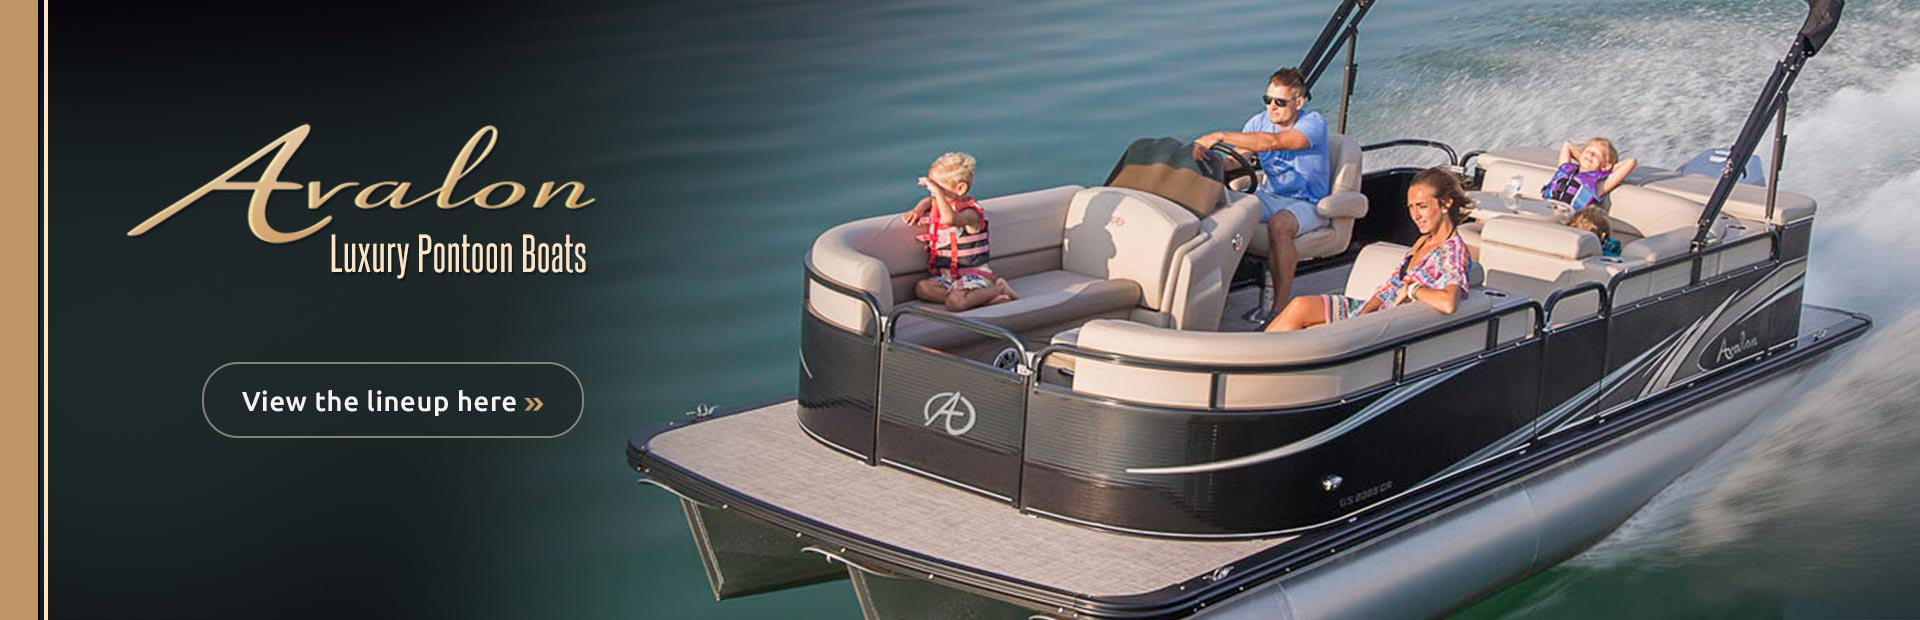 Click here to view our lineup of Avalon luxury pontoon boats.